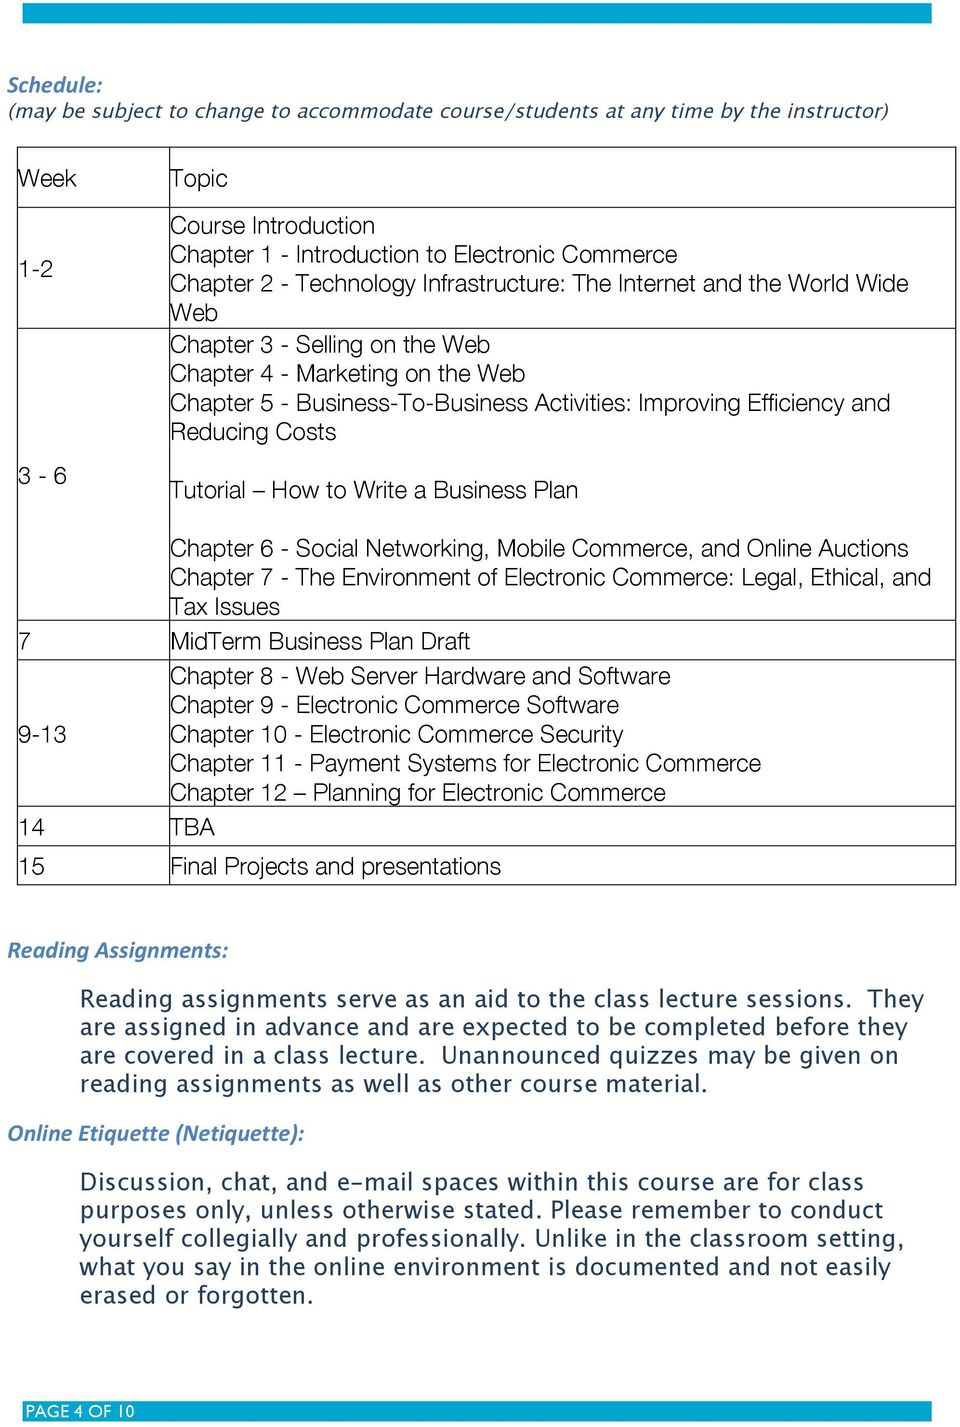 Reducing Costs Tutorial How to Write a Business Plan Chapter 6 - Social Networking, Mobile Commerce, and Online Auctions Chapter 7 - The Environment of Electronic Commerce: Legal, Ethical, and Tax